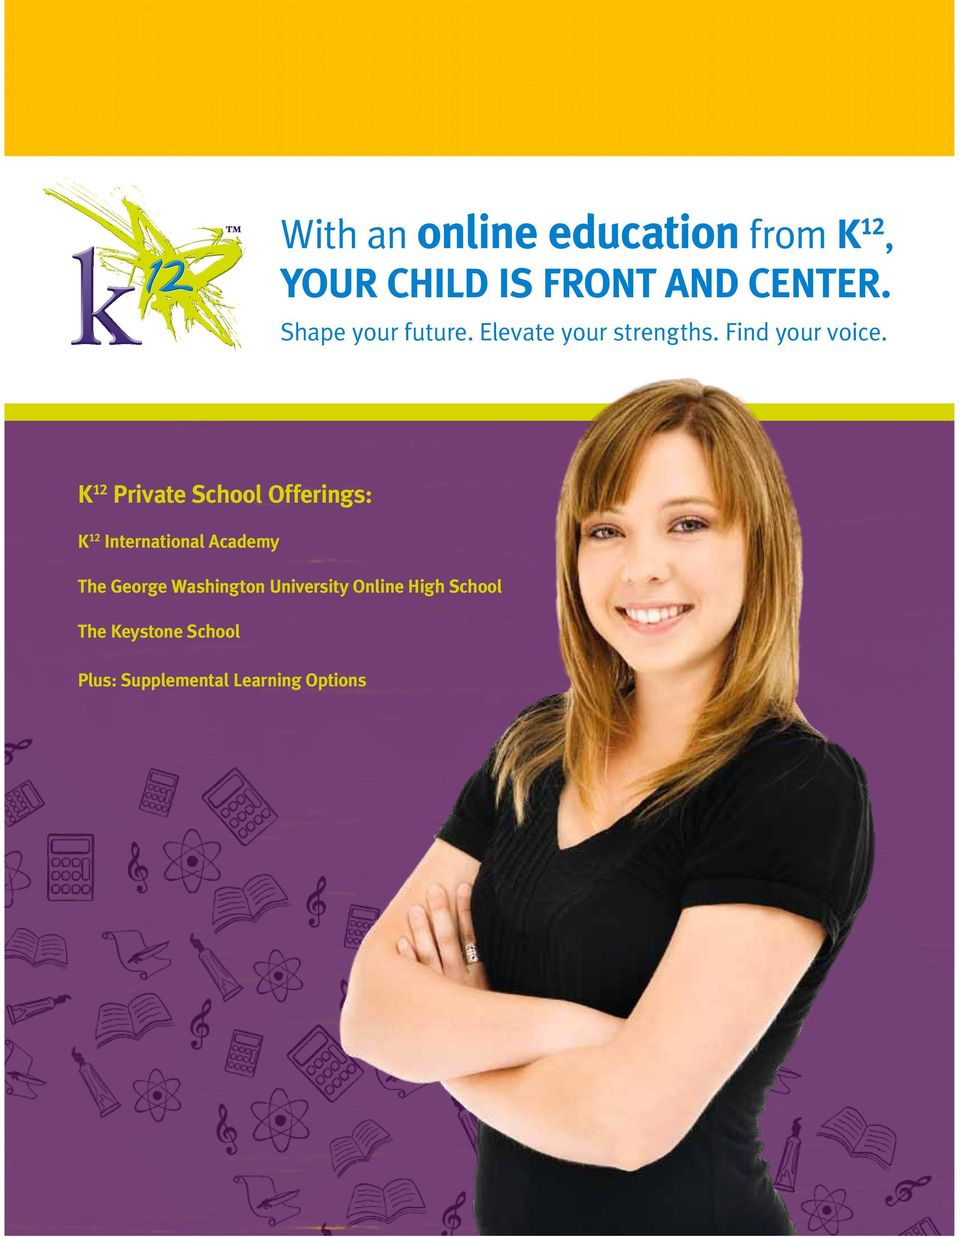 motion a With an online education from K12, YOUR CHILD IS FRONT AND CENTER. When it comes to a K12 education, the words of students, parents, and teachers resonate the most.